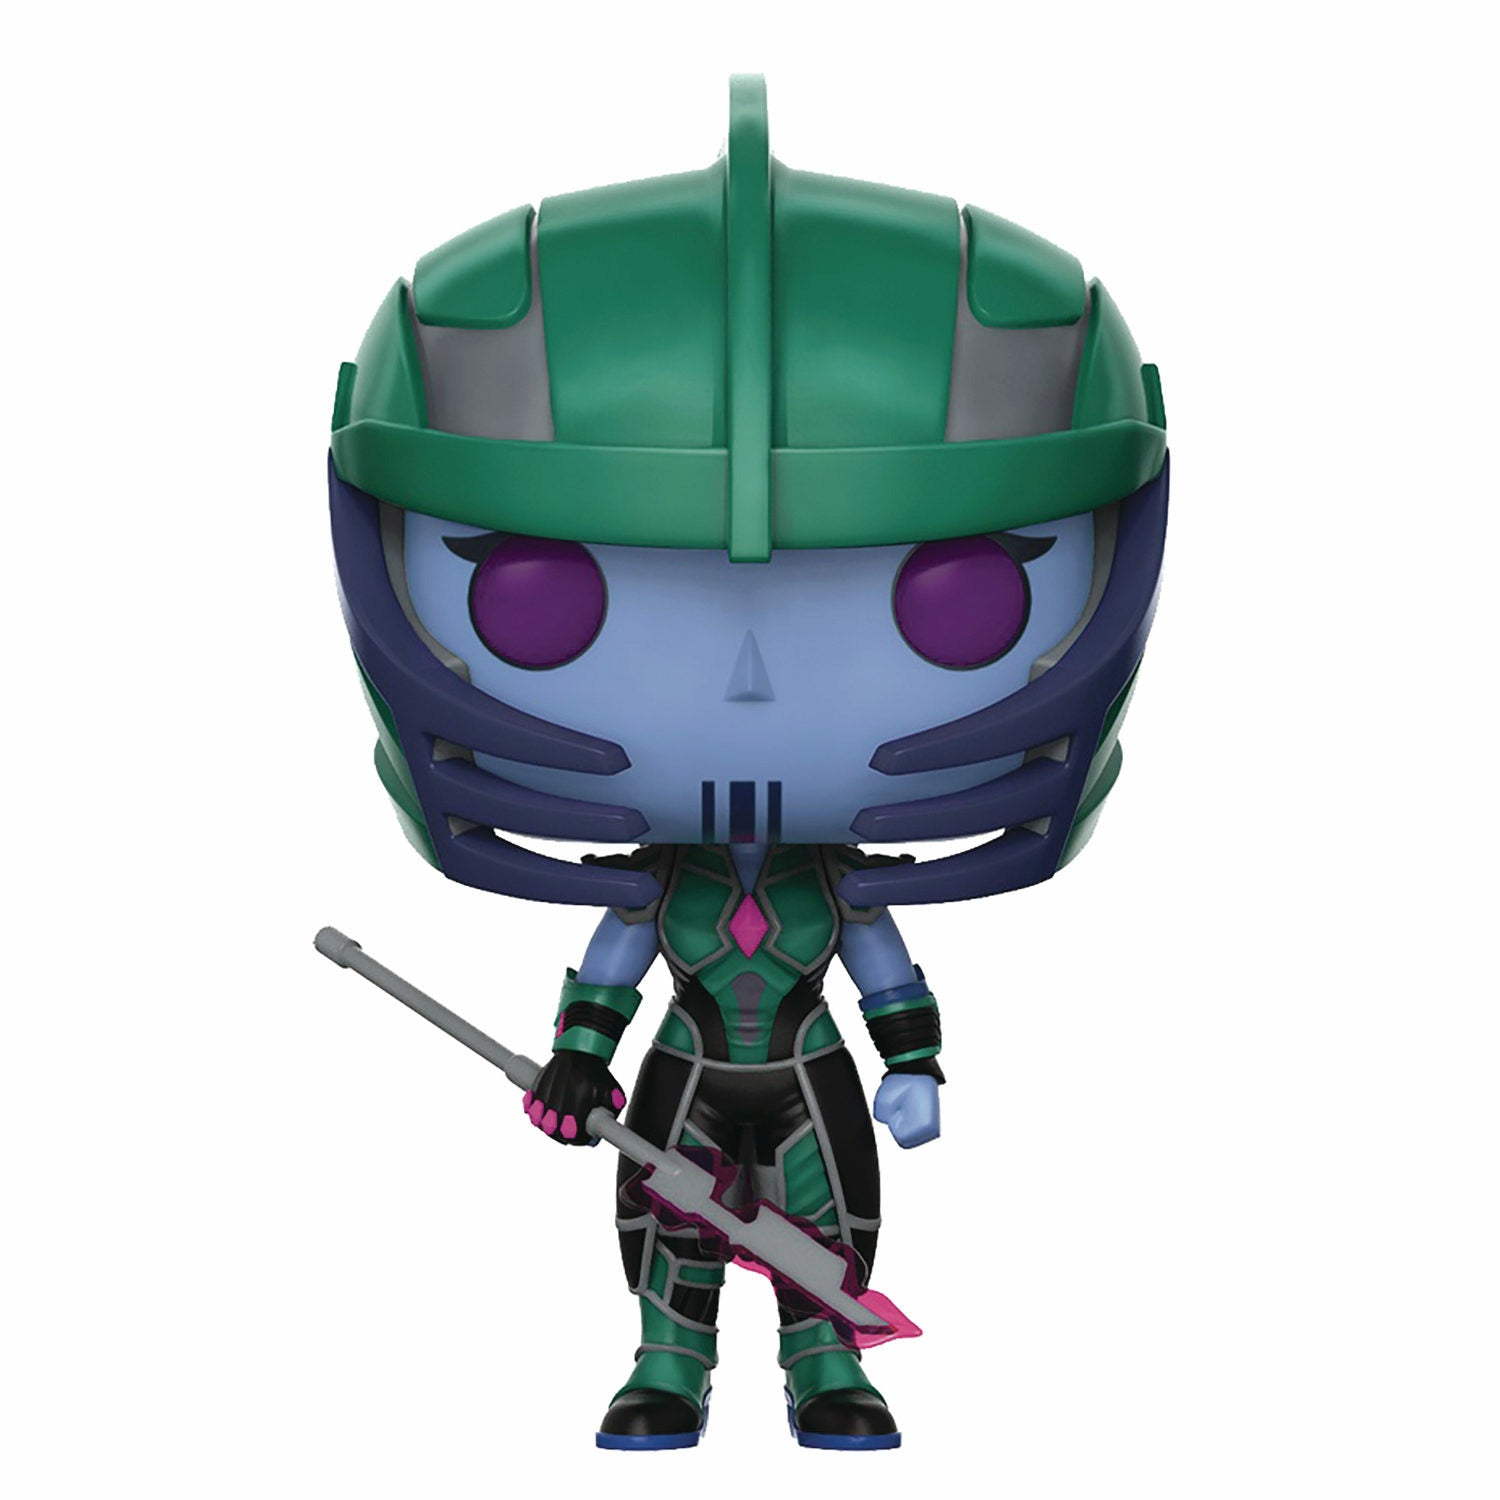 Guardians of the Galaxy: The Telltale Series Hala the Accuser Pop! Figure